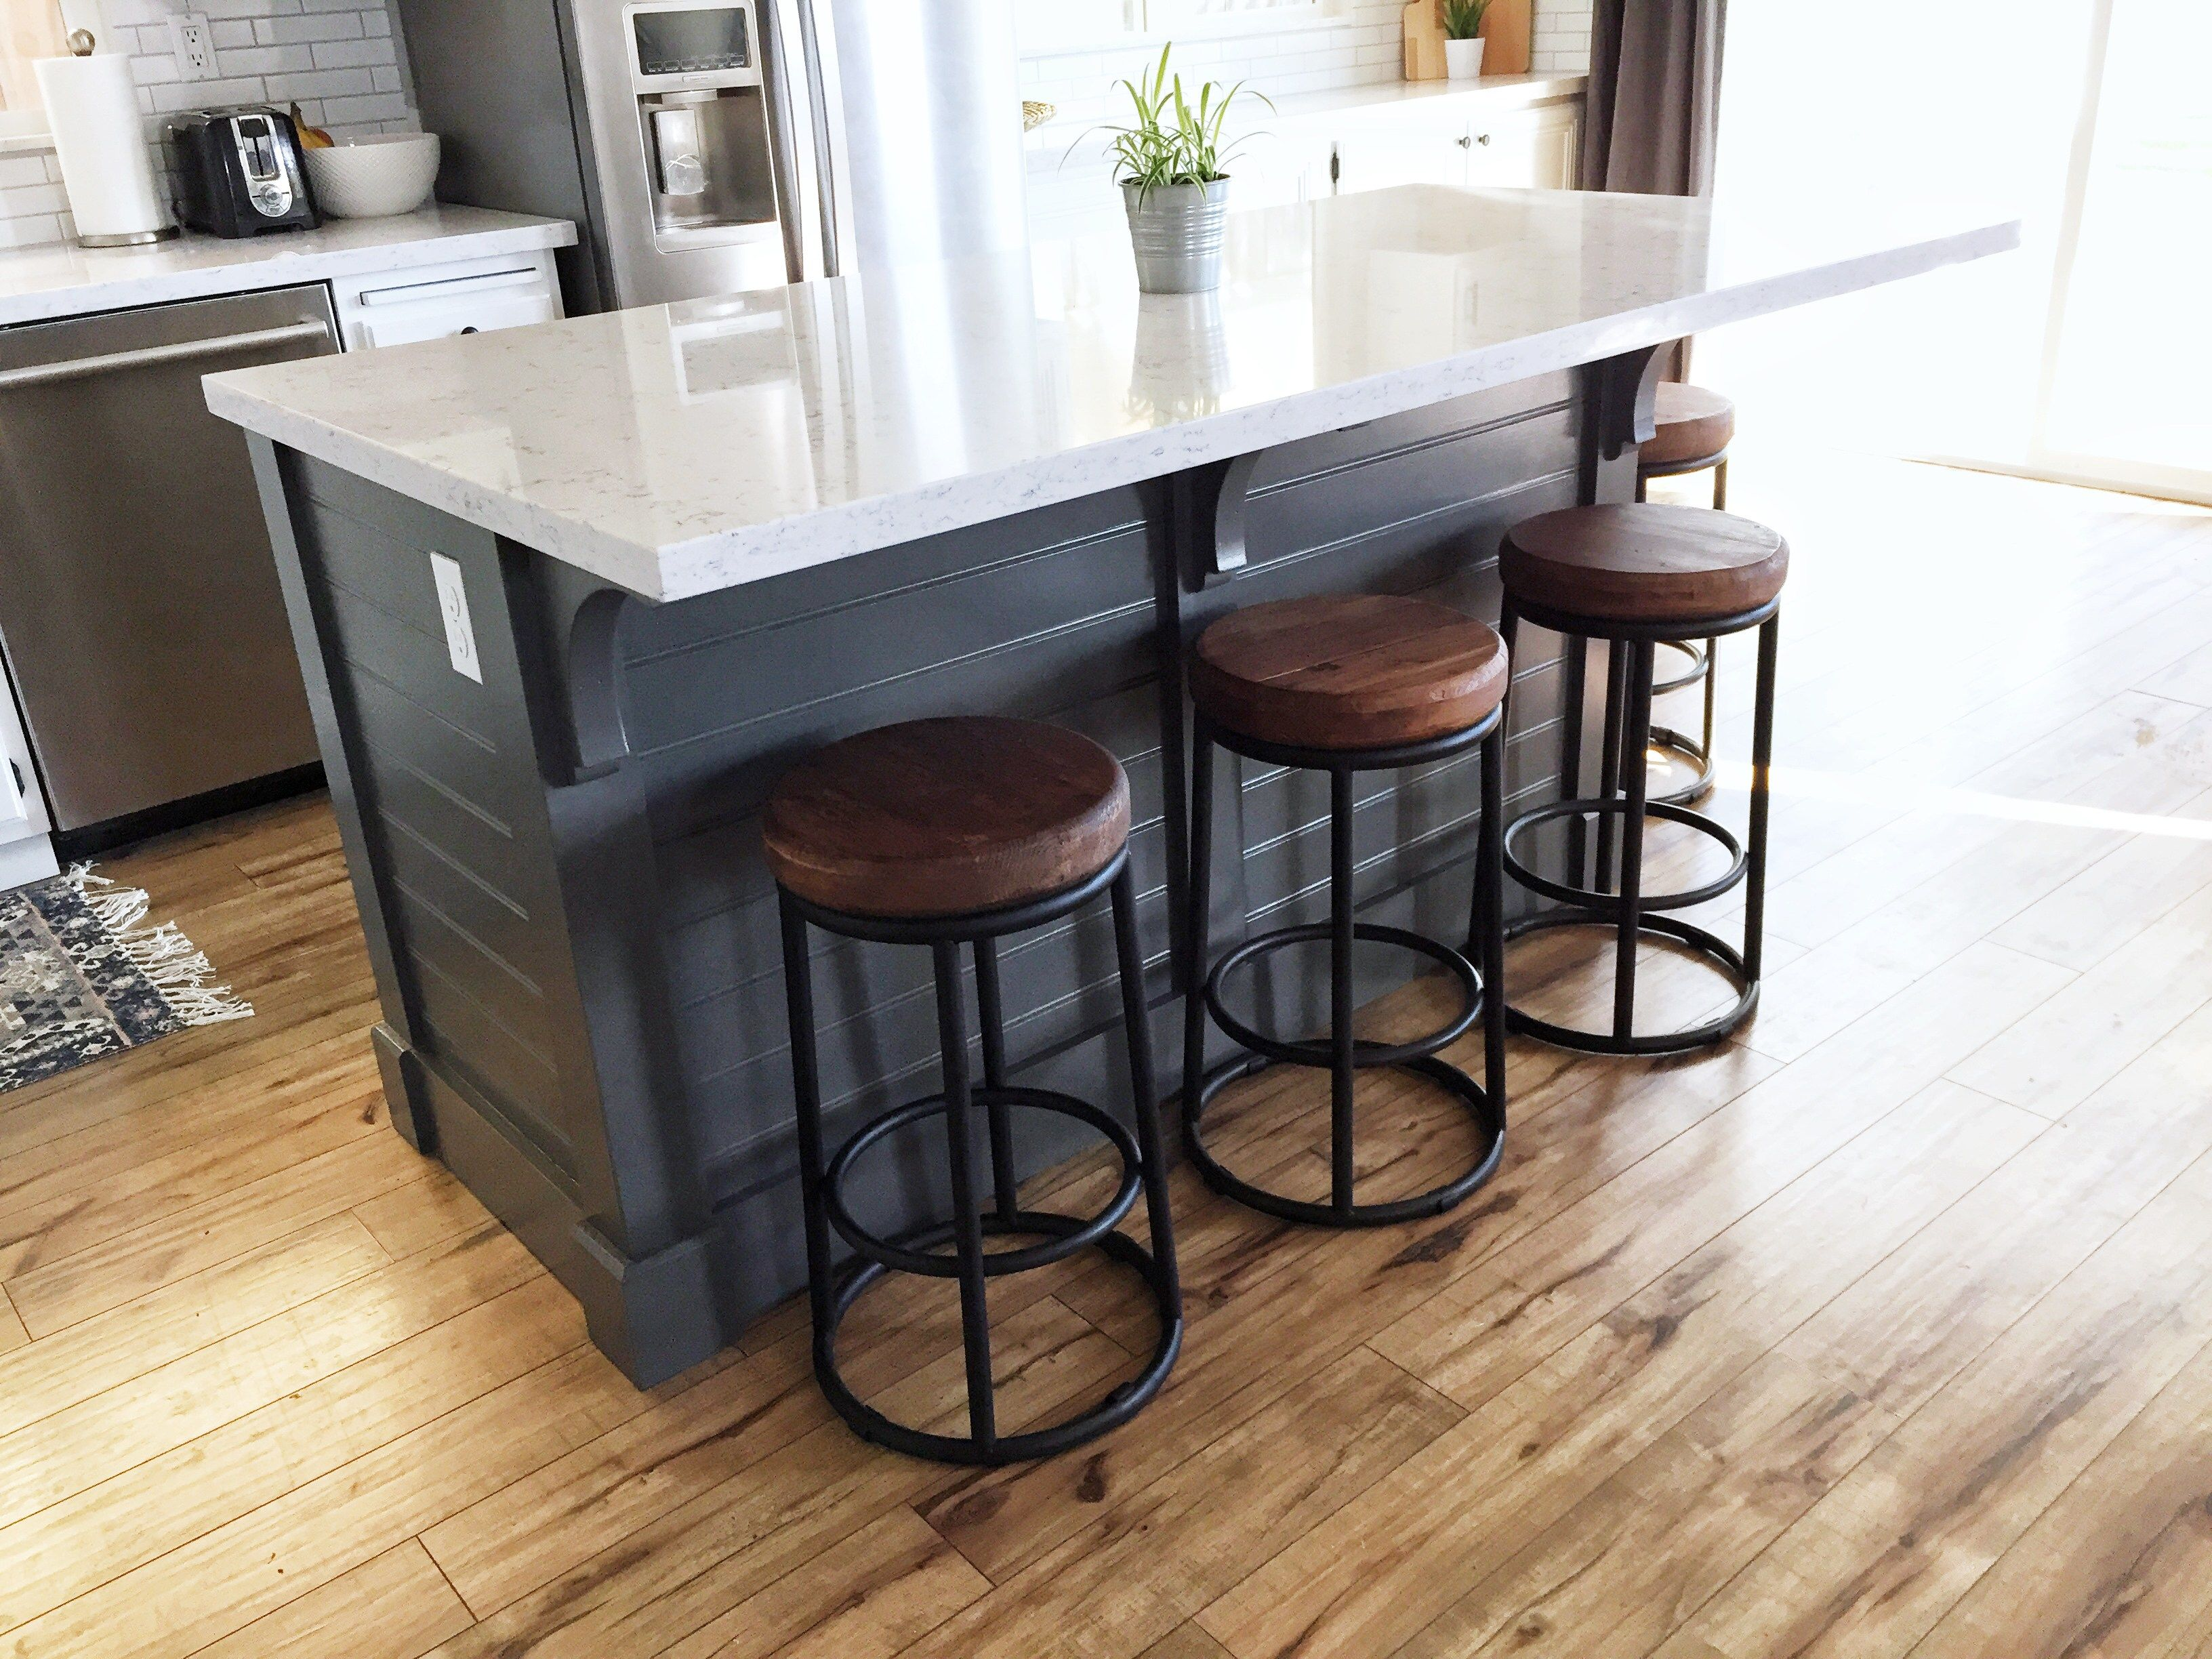 Kitchen Island- Make it yourself! Save Big | Pinterest | Kitchens ...